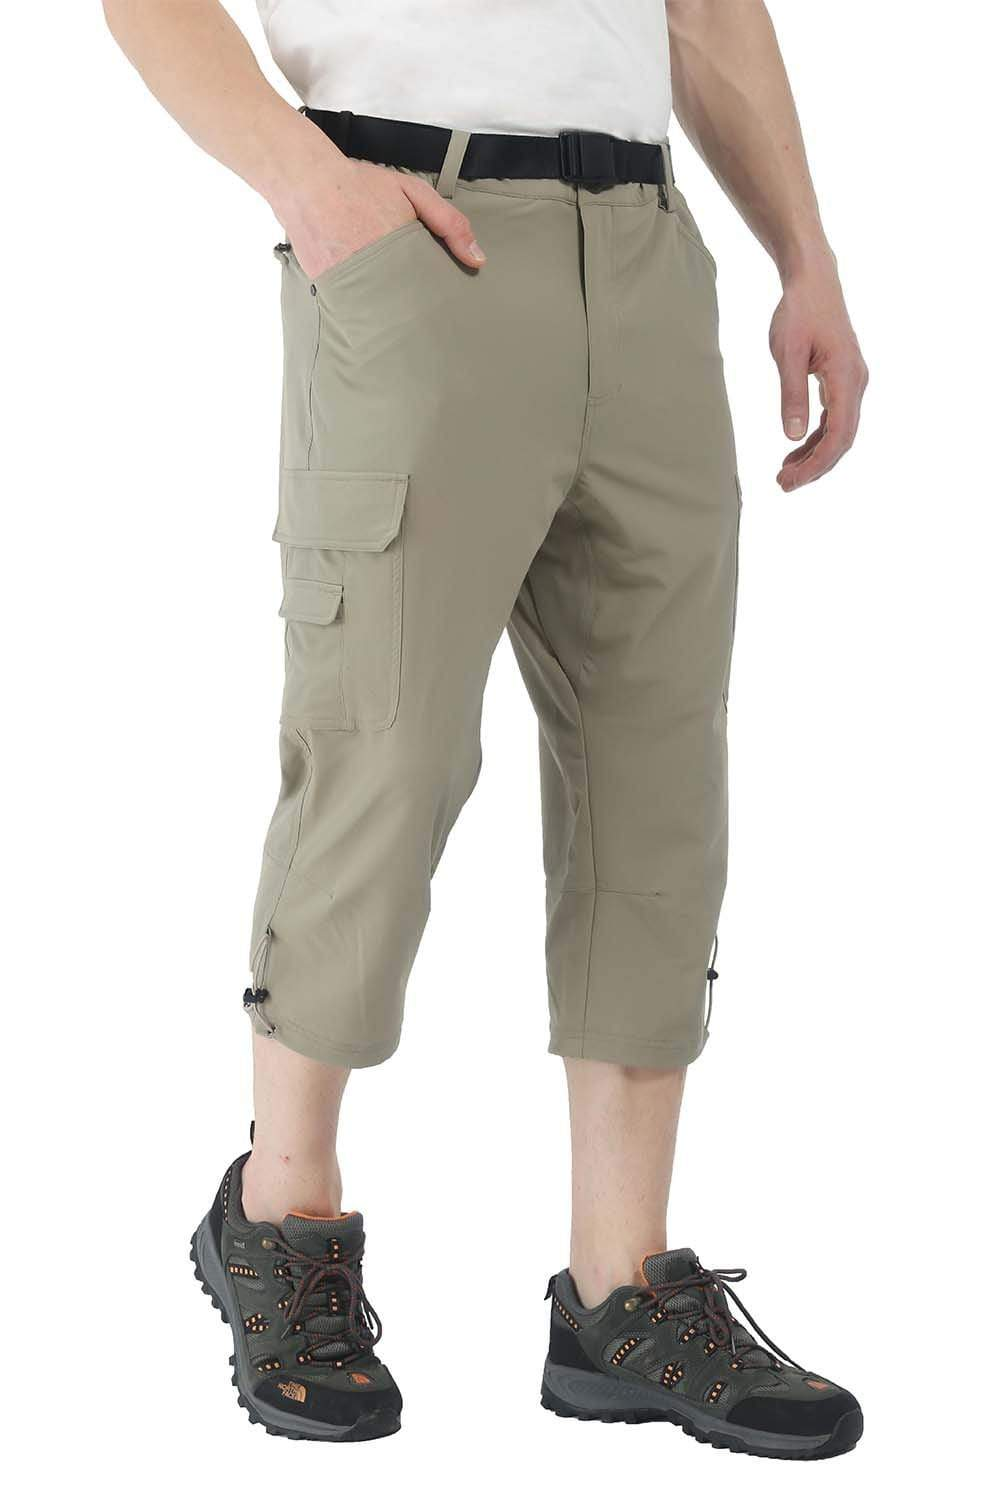 MIER Mens Quick Dry 3//4 Cargo Capri Pants Stretch Outdoor Hiking Shorts Below Knee Water Resistant with 6 Pockets